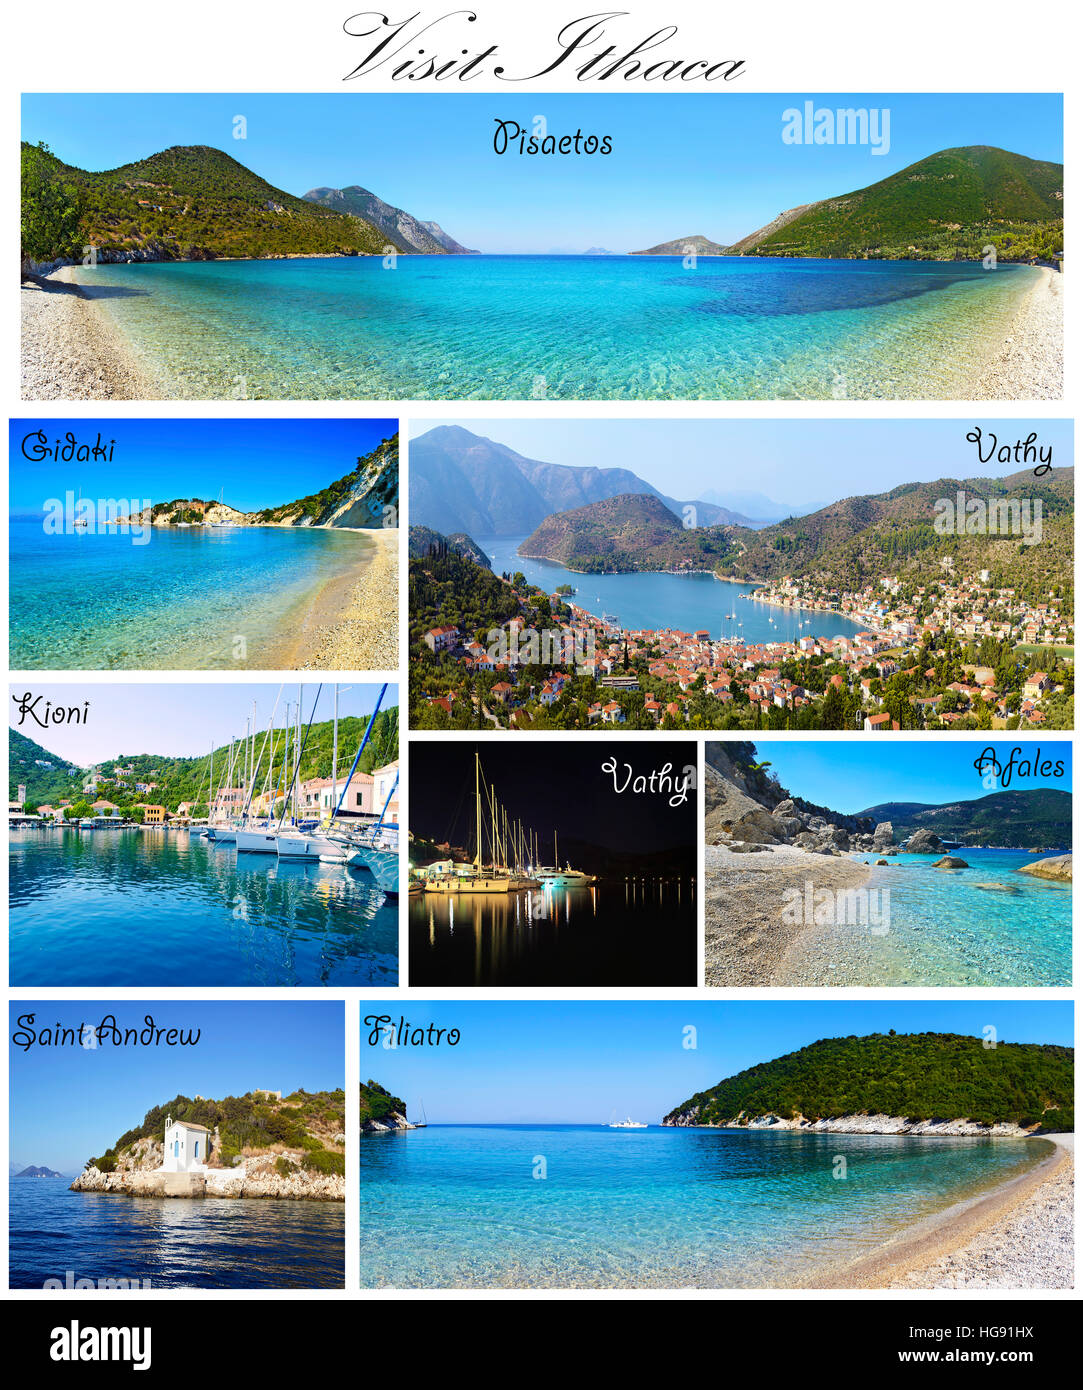 visit Ithaca collage Ionian islands Greece - Stock Image